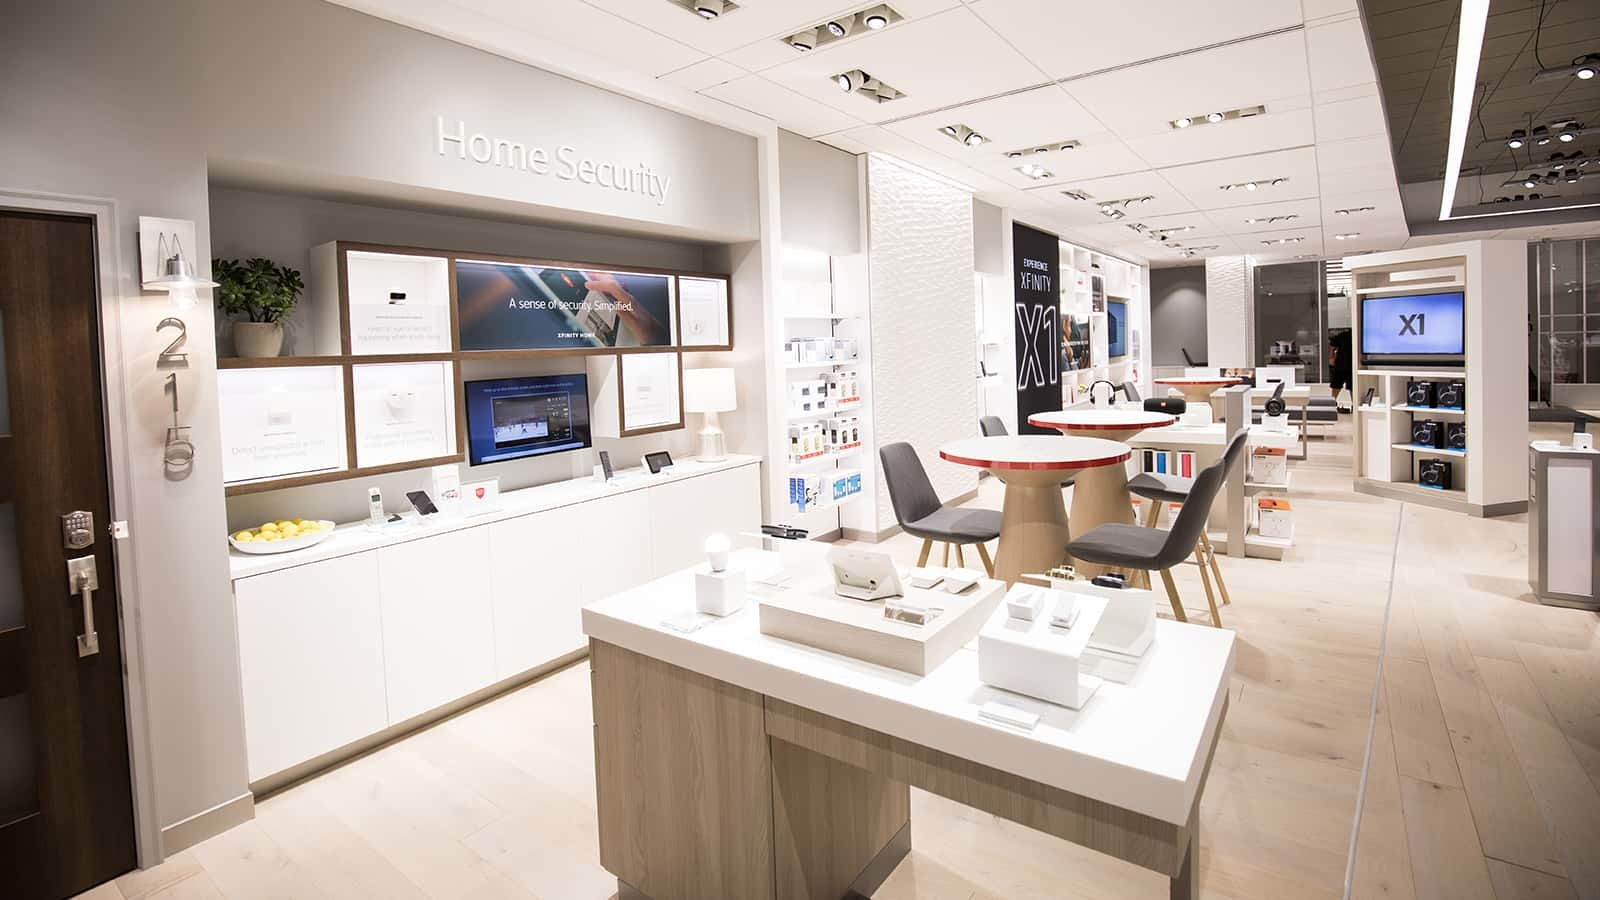 Comcast Xfinity Stores got a new design during this roll out.